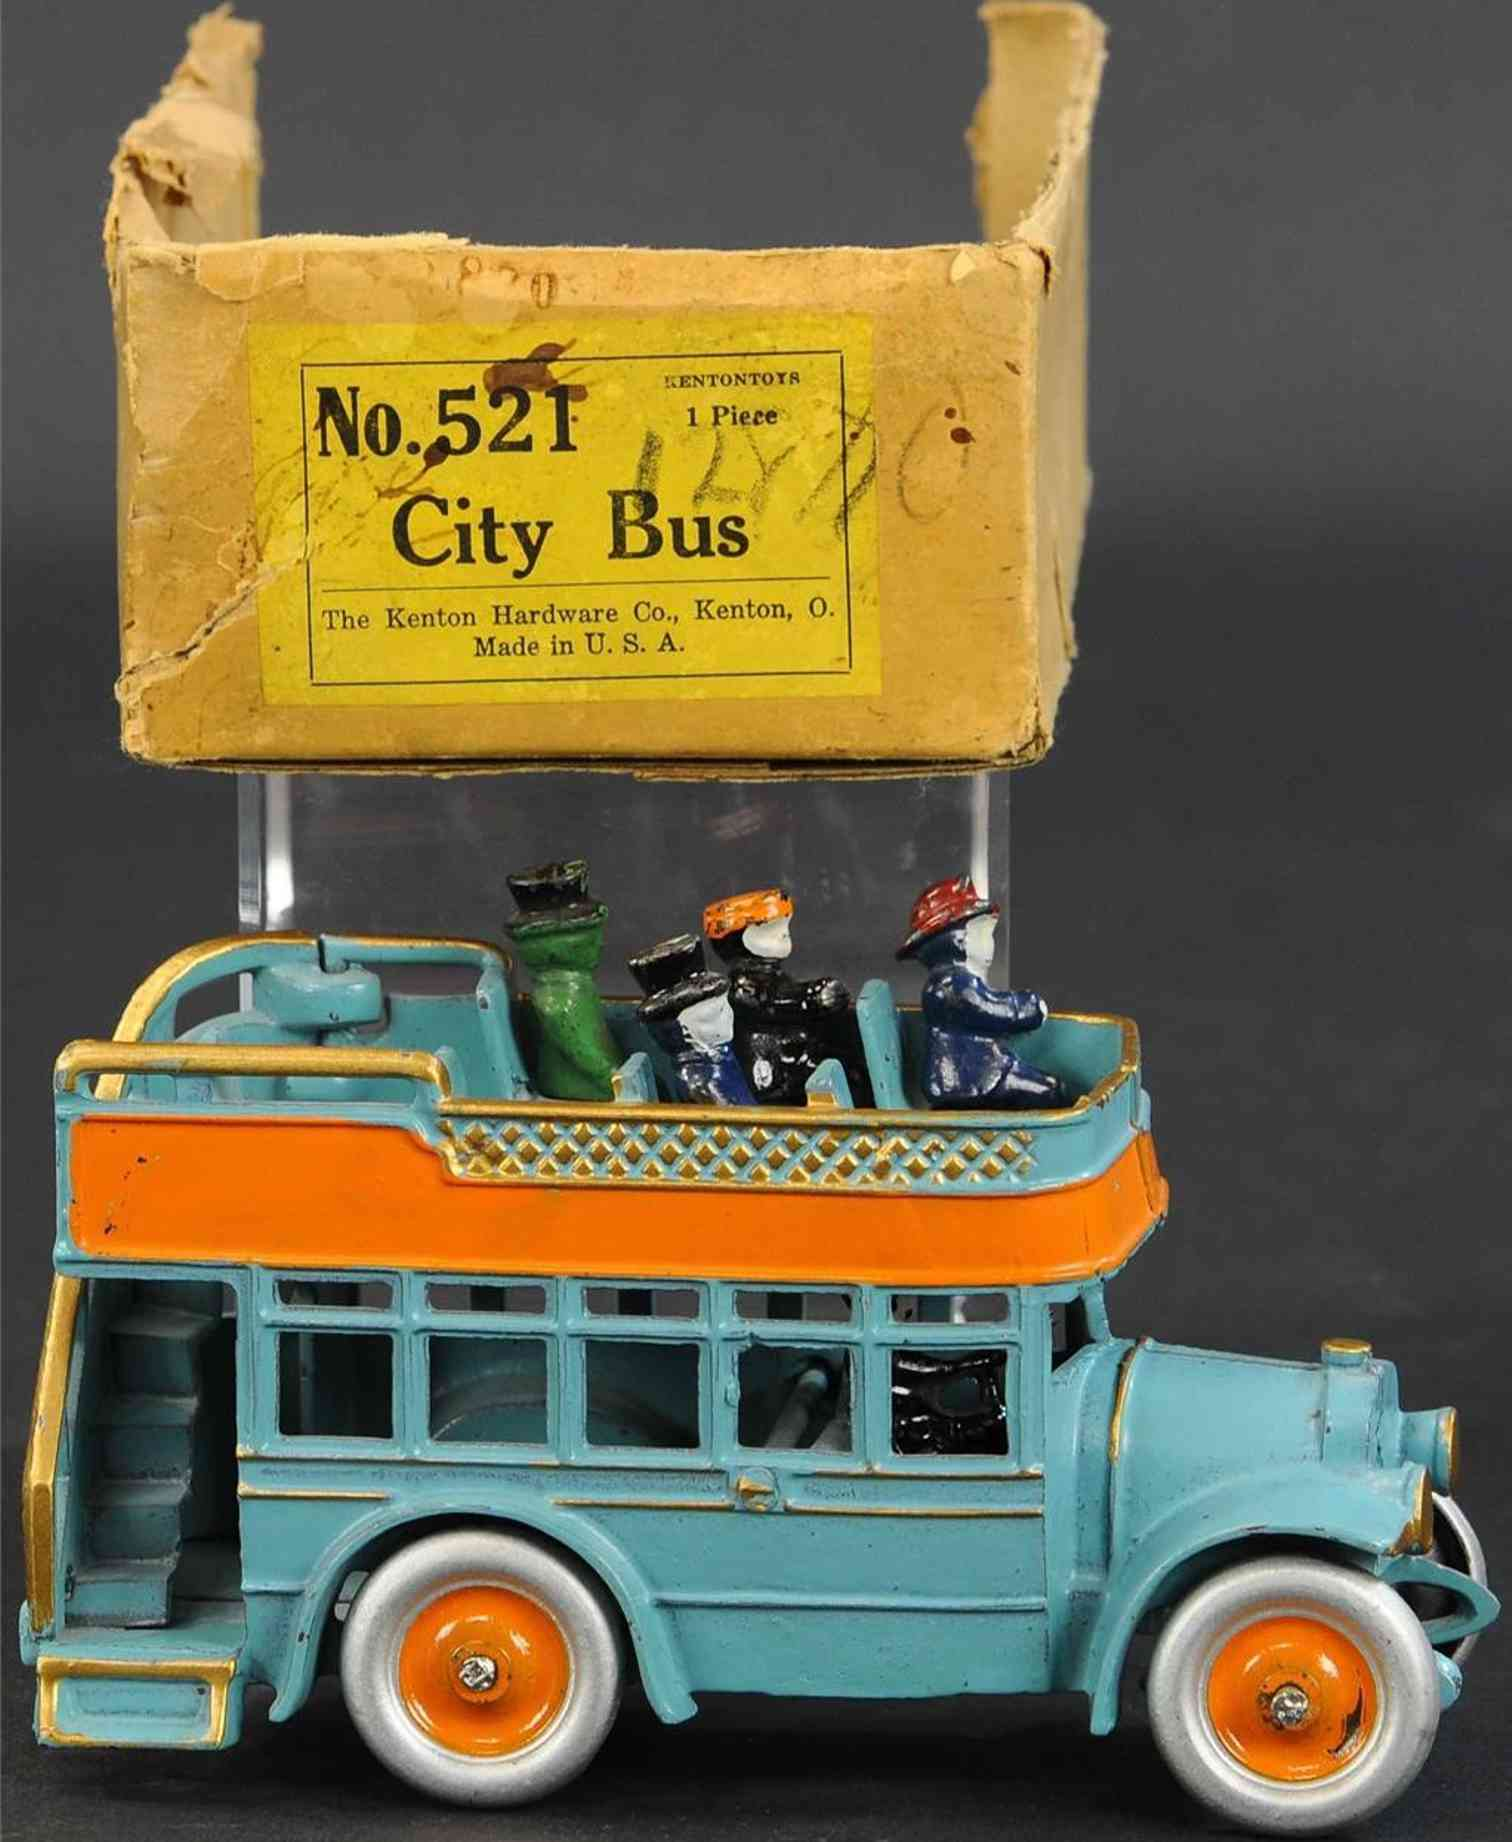 kenton hardware co 521 cast iron toy bus double decker bus #521, made of cast iron, painted sky blue